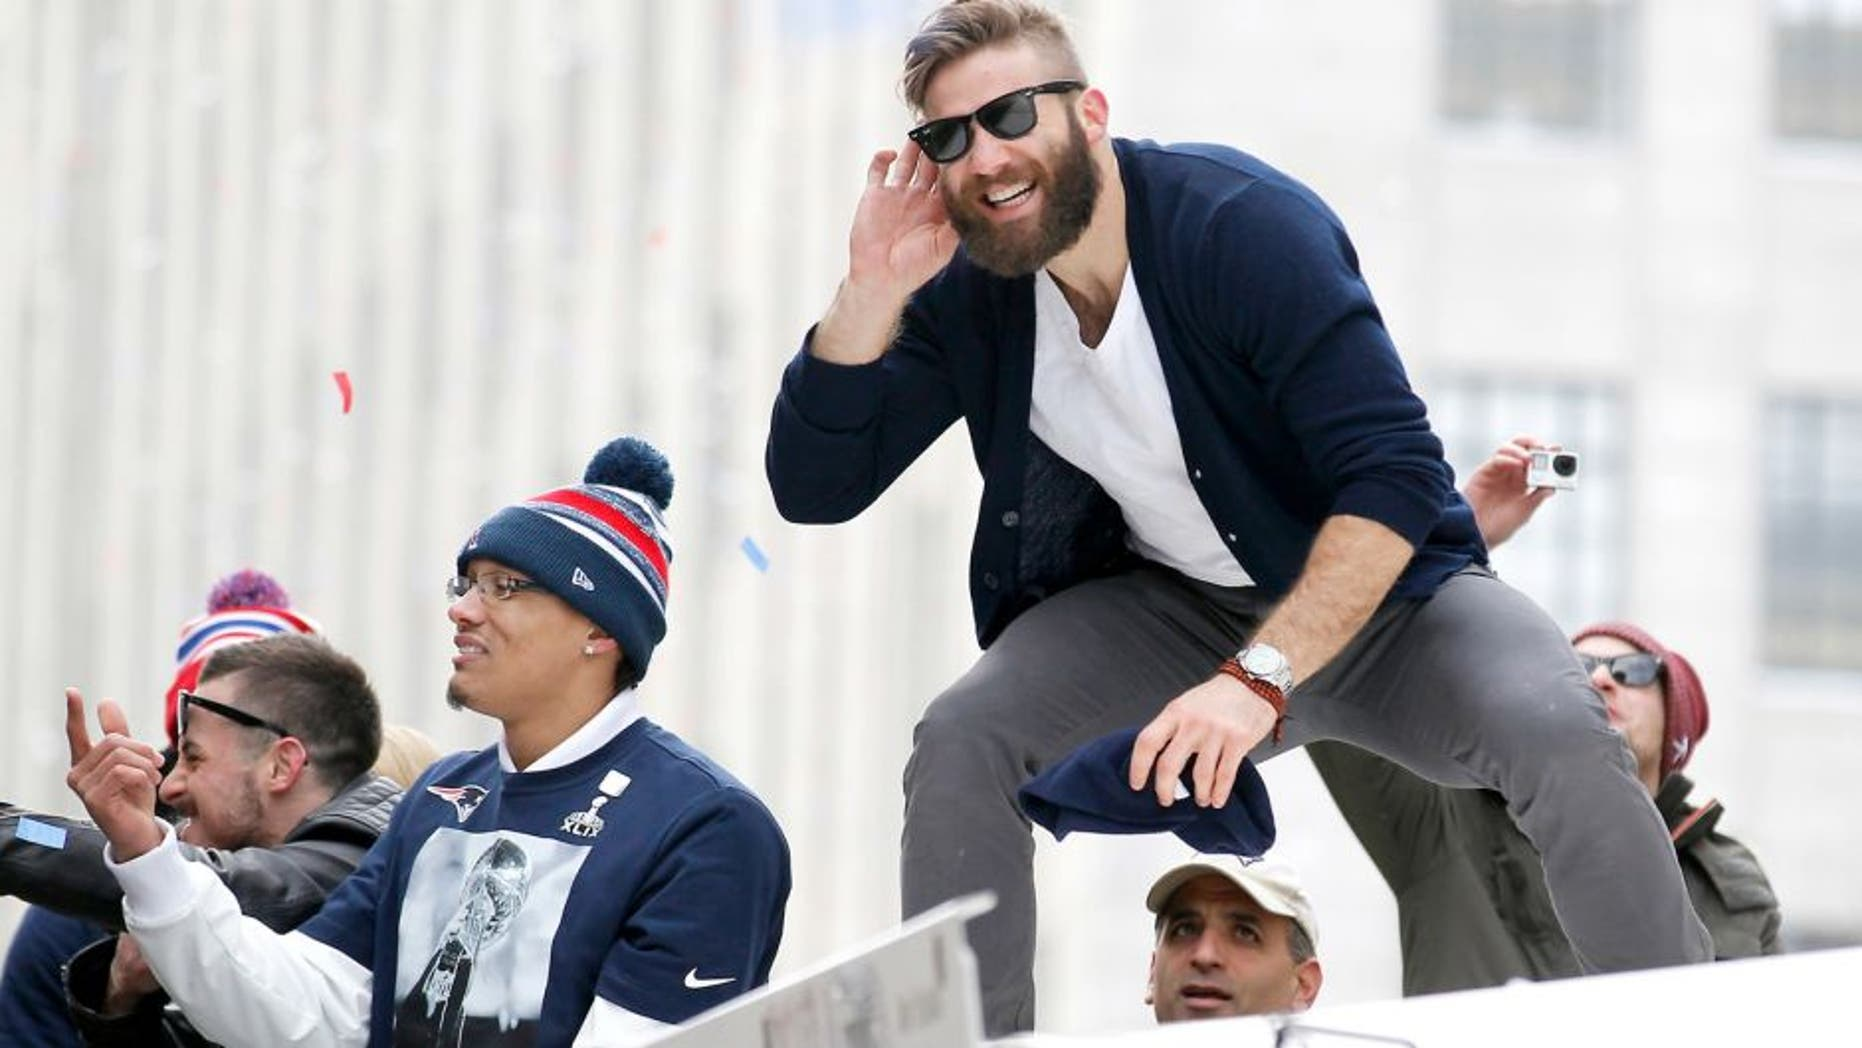 Feb 4, 2015; Boston, MA, USA; New England Patriots wide receiver Julian Edelman gestures to the fans during the Super Bowl XLIX victory parade. Mandatory Credit: Stew Milne-USA TODAY Sports